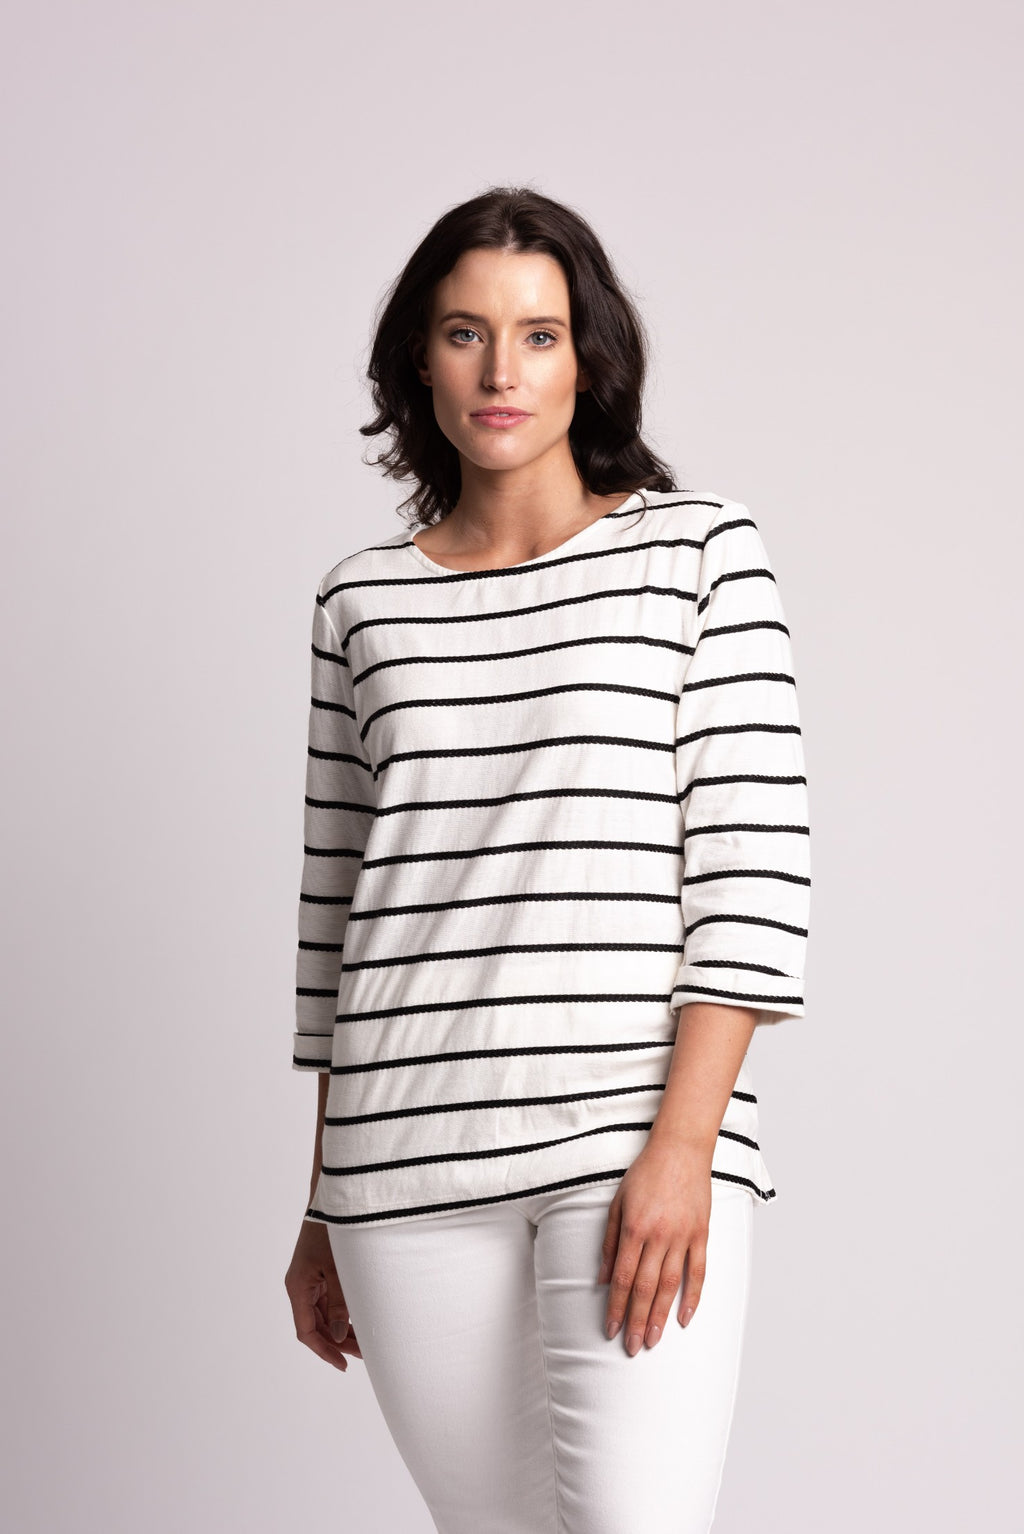 TEXTURED STRIPE TOP WITH 3/4 SLEEVE